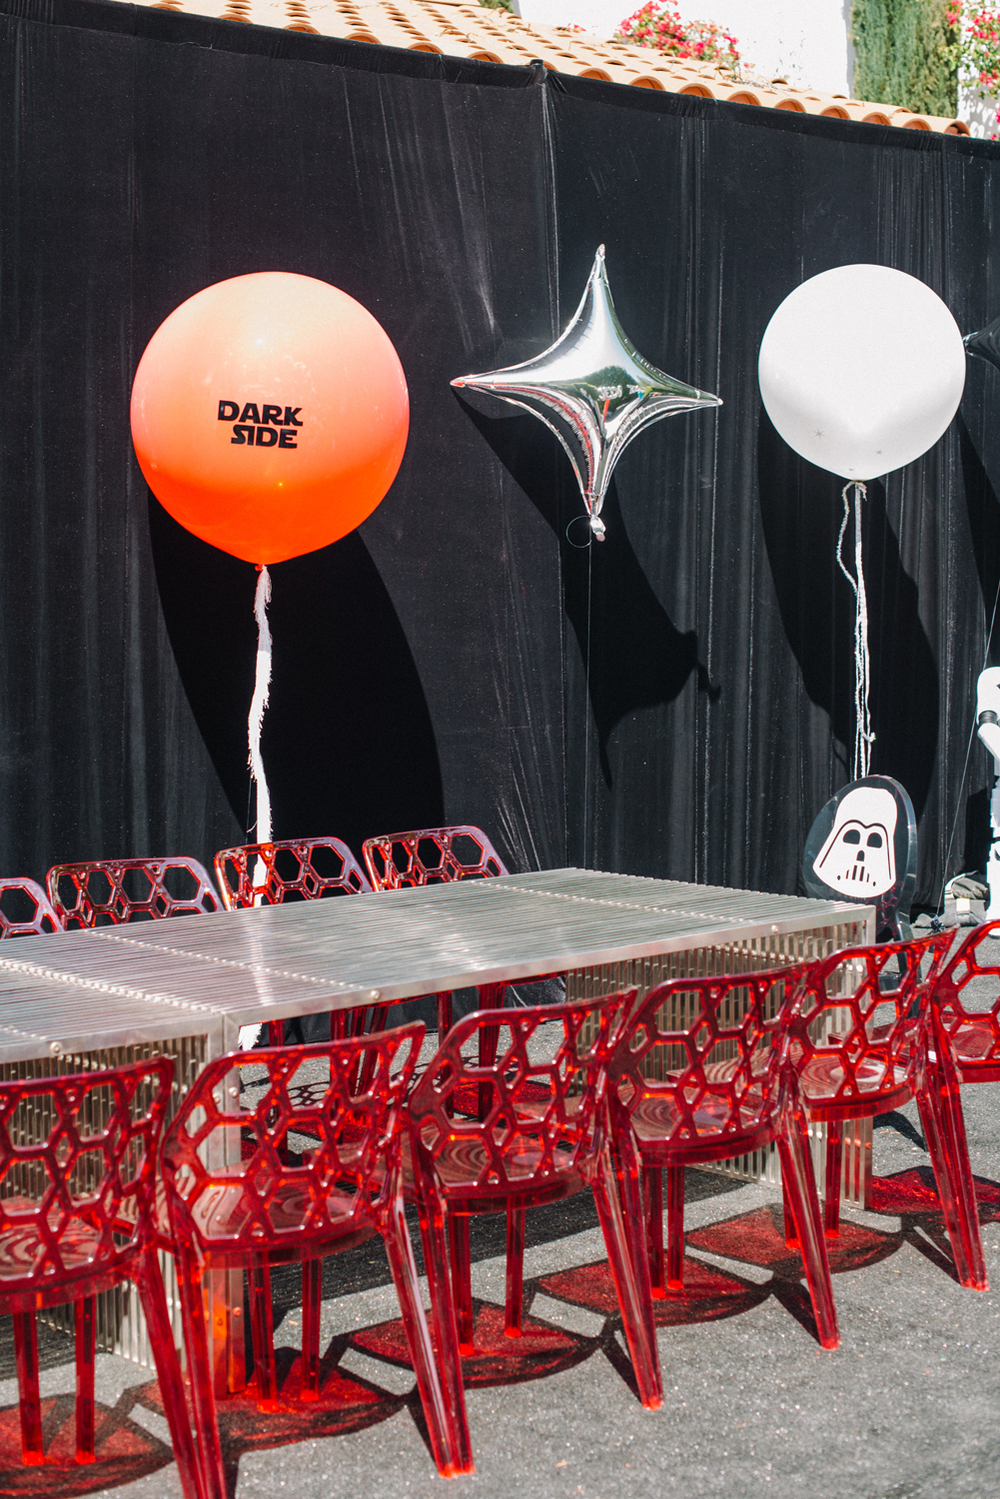 tarynco-events-starwars-themed-kids-birthday-party-darkside-balloon-decor.jpg